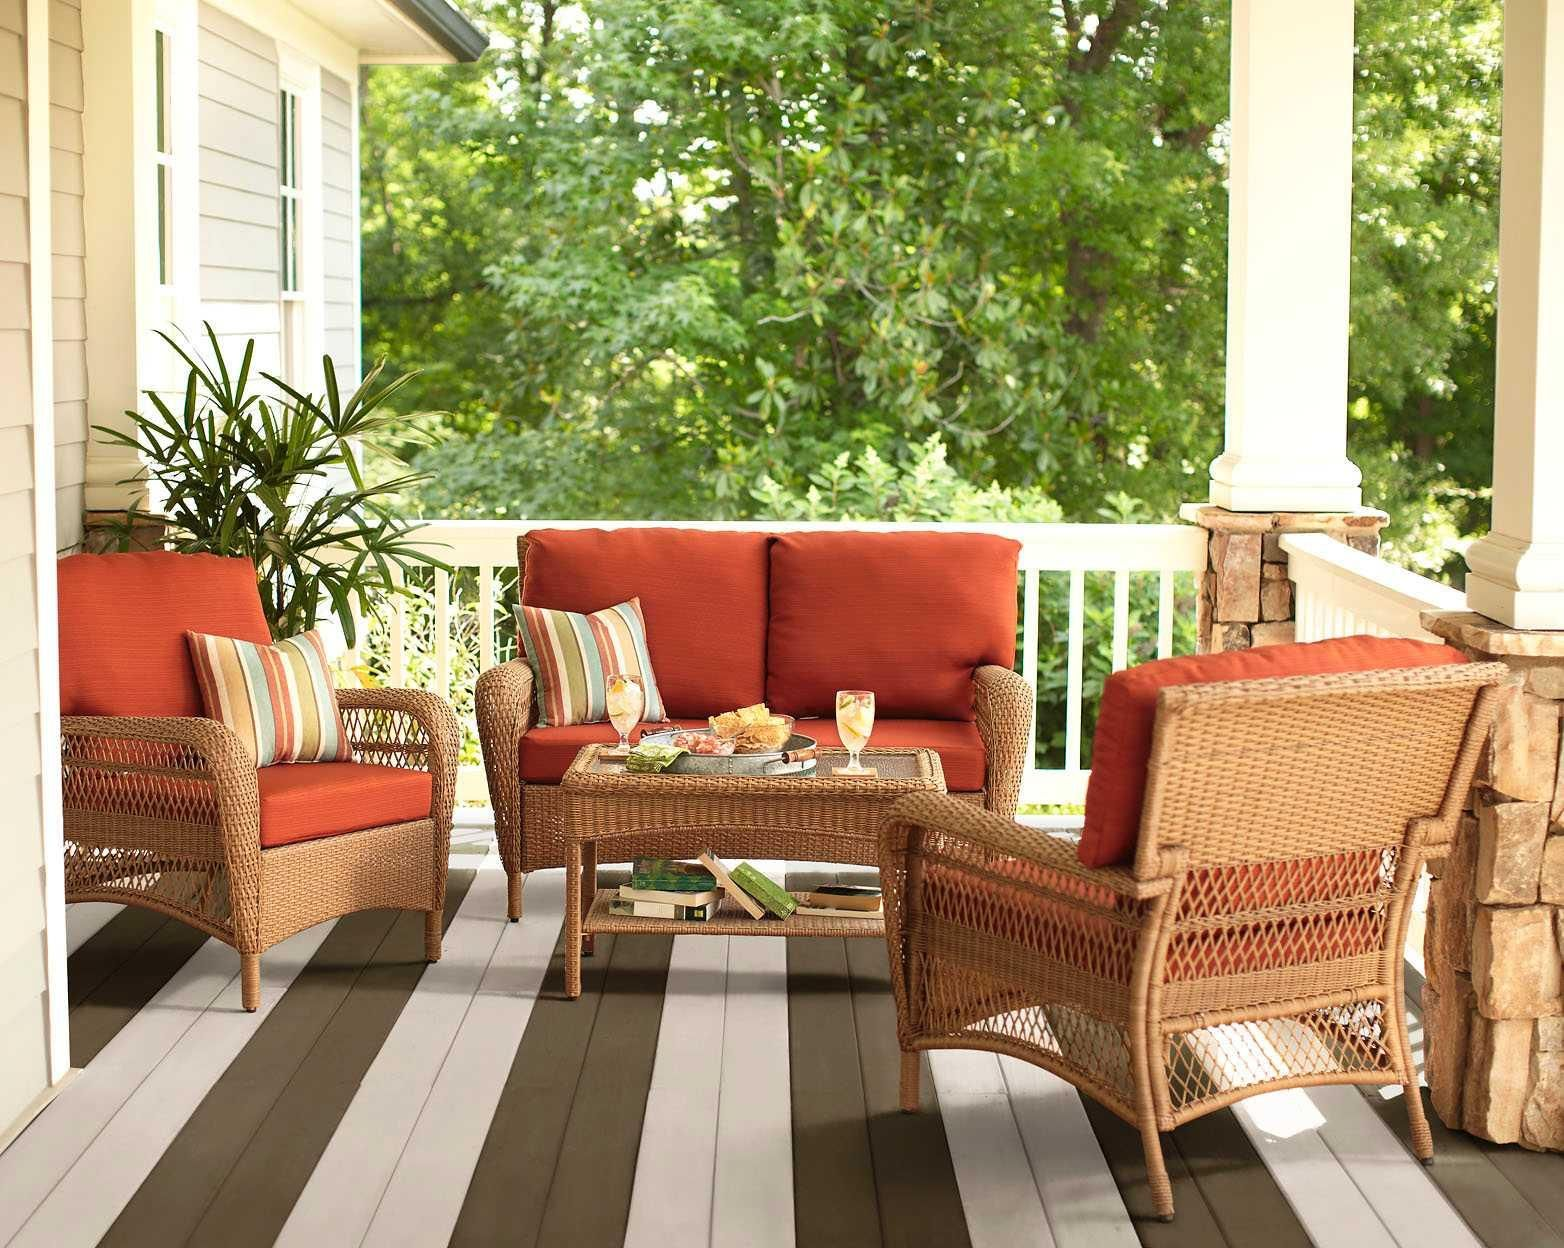 How To Paint Stripes on a Deck The Home Depot Community